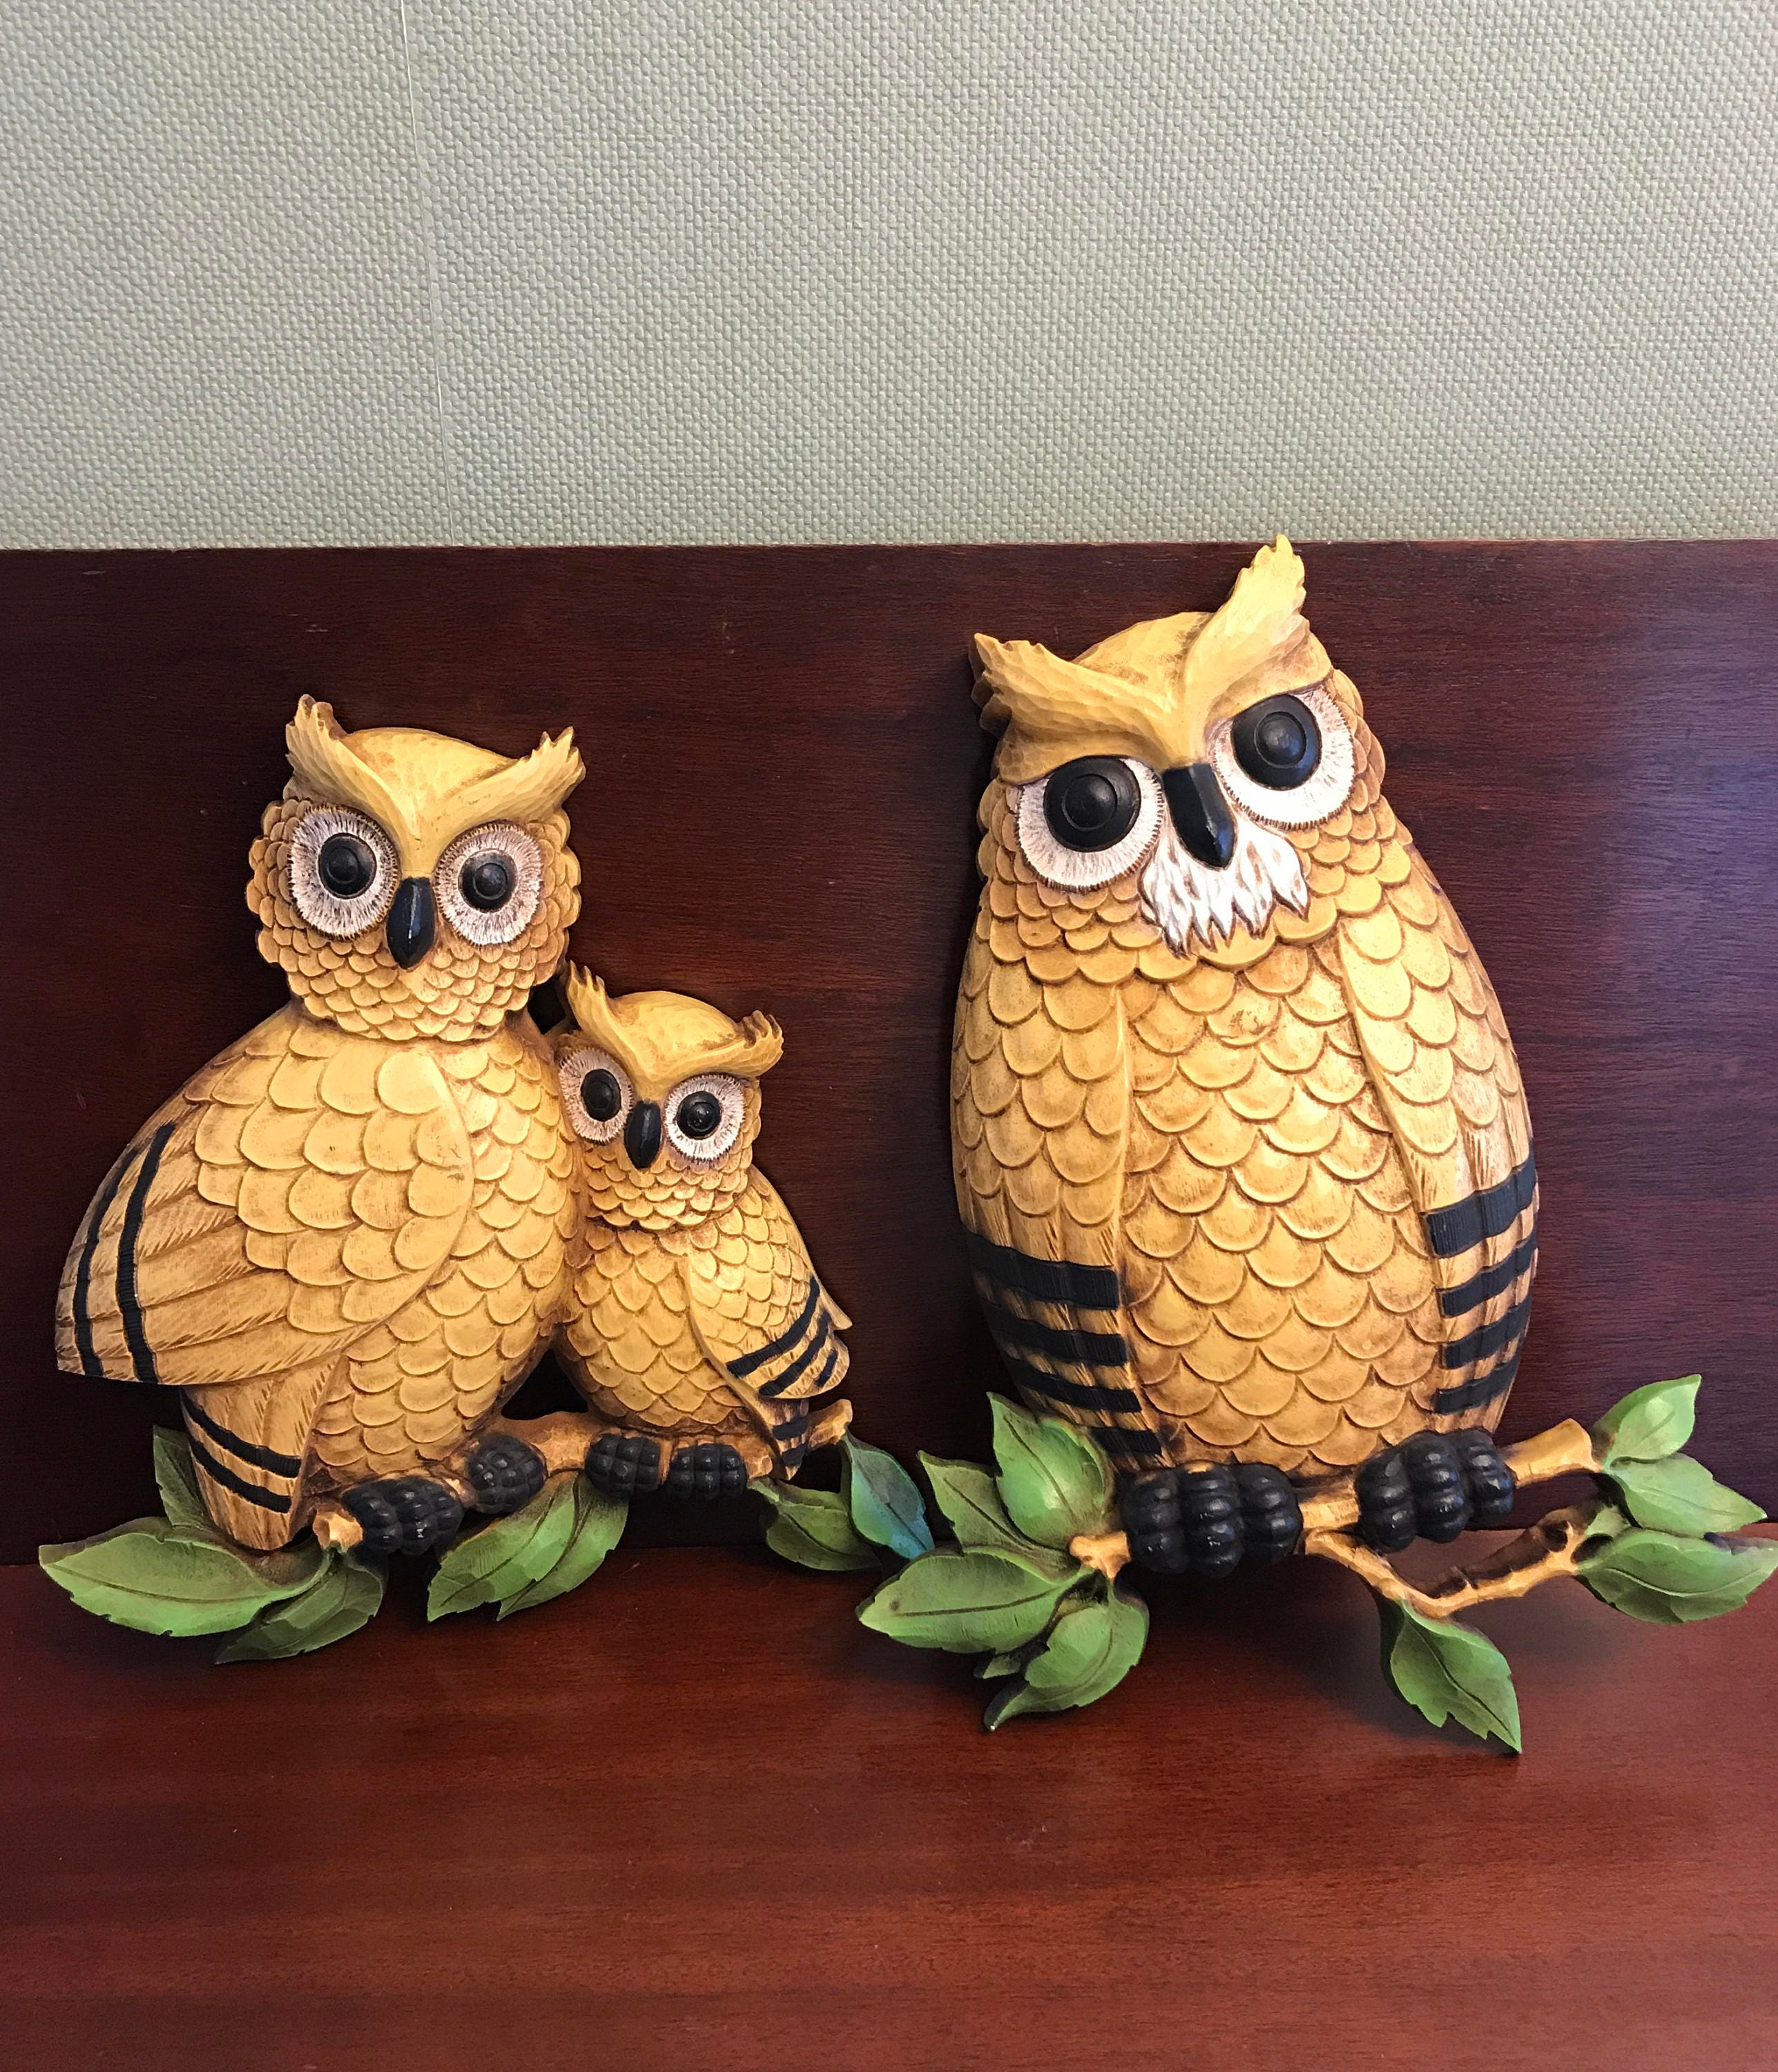 Vintage Owl Kitchen Decor: Vintage Owl Wall Decor, Homco Owls, Kitschy Owls, Owl Wall